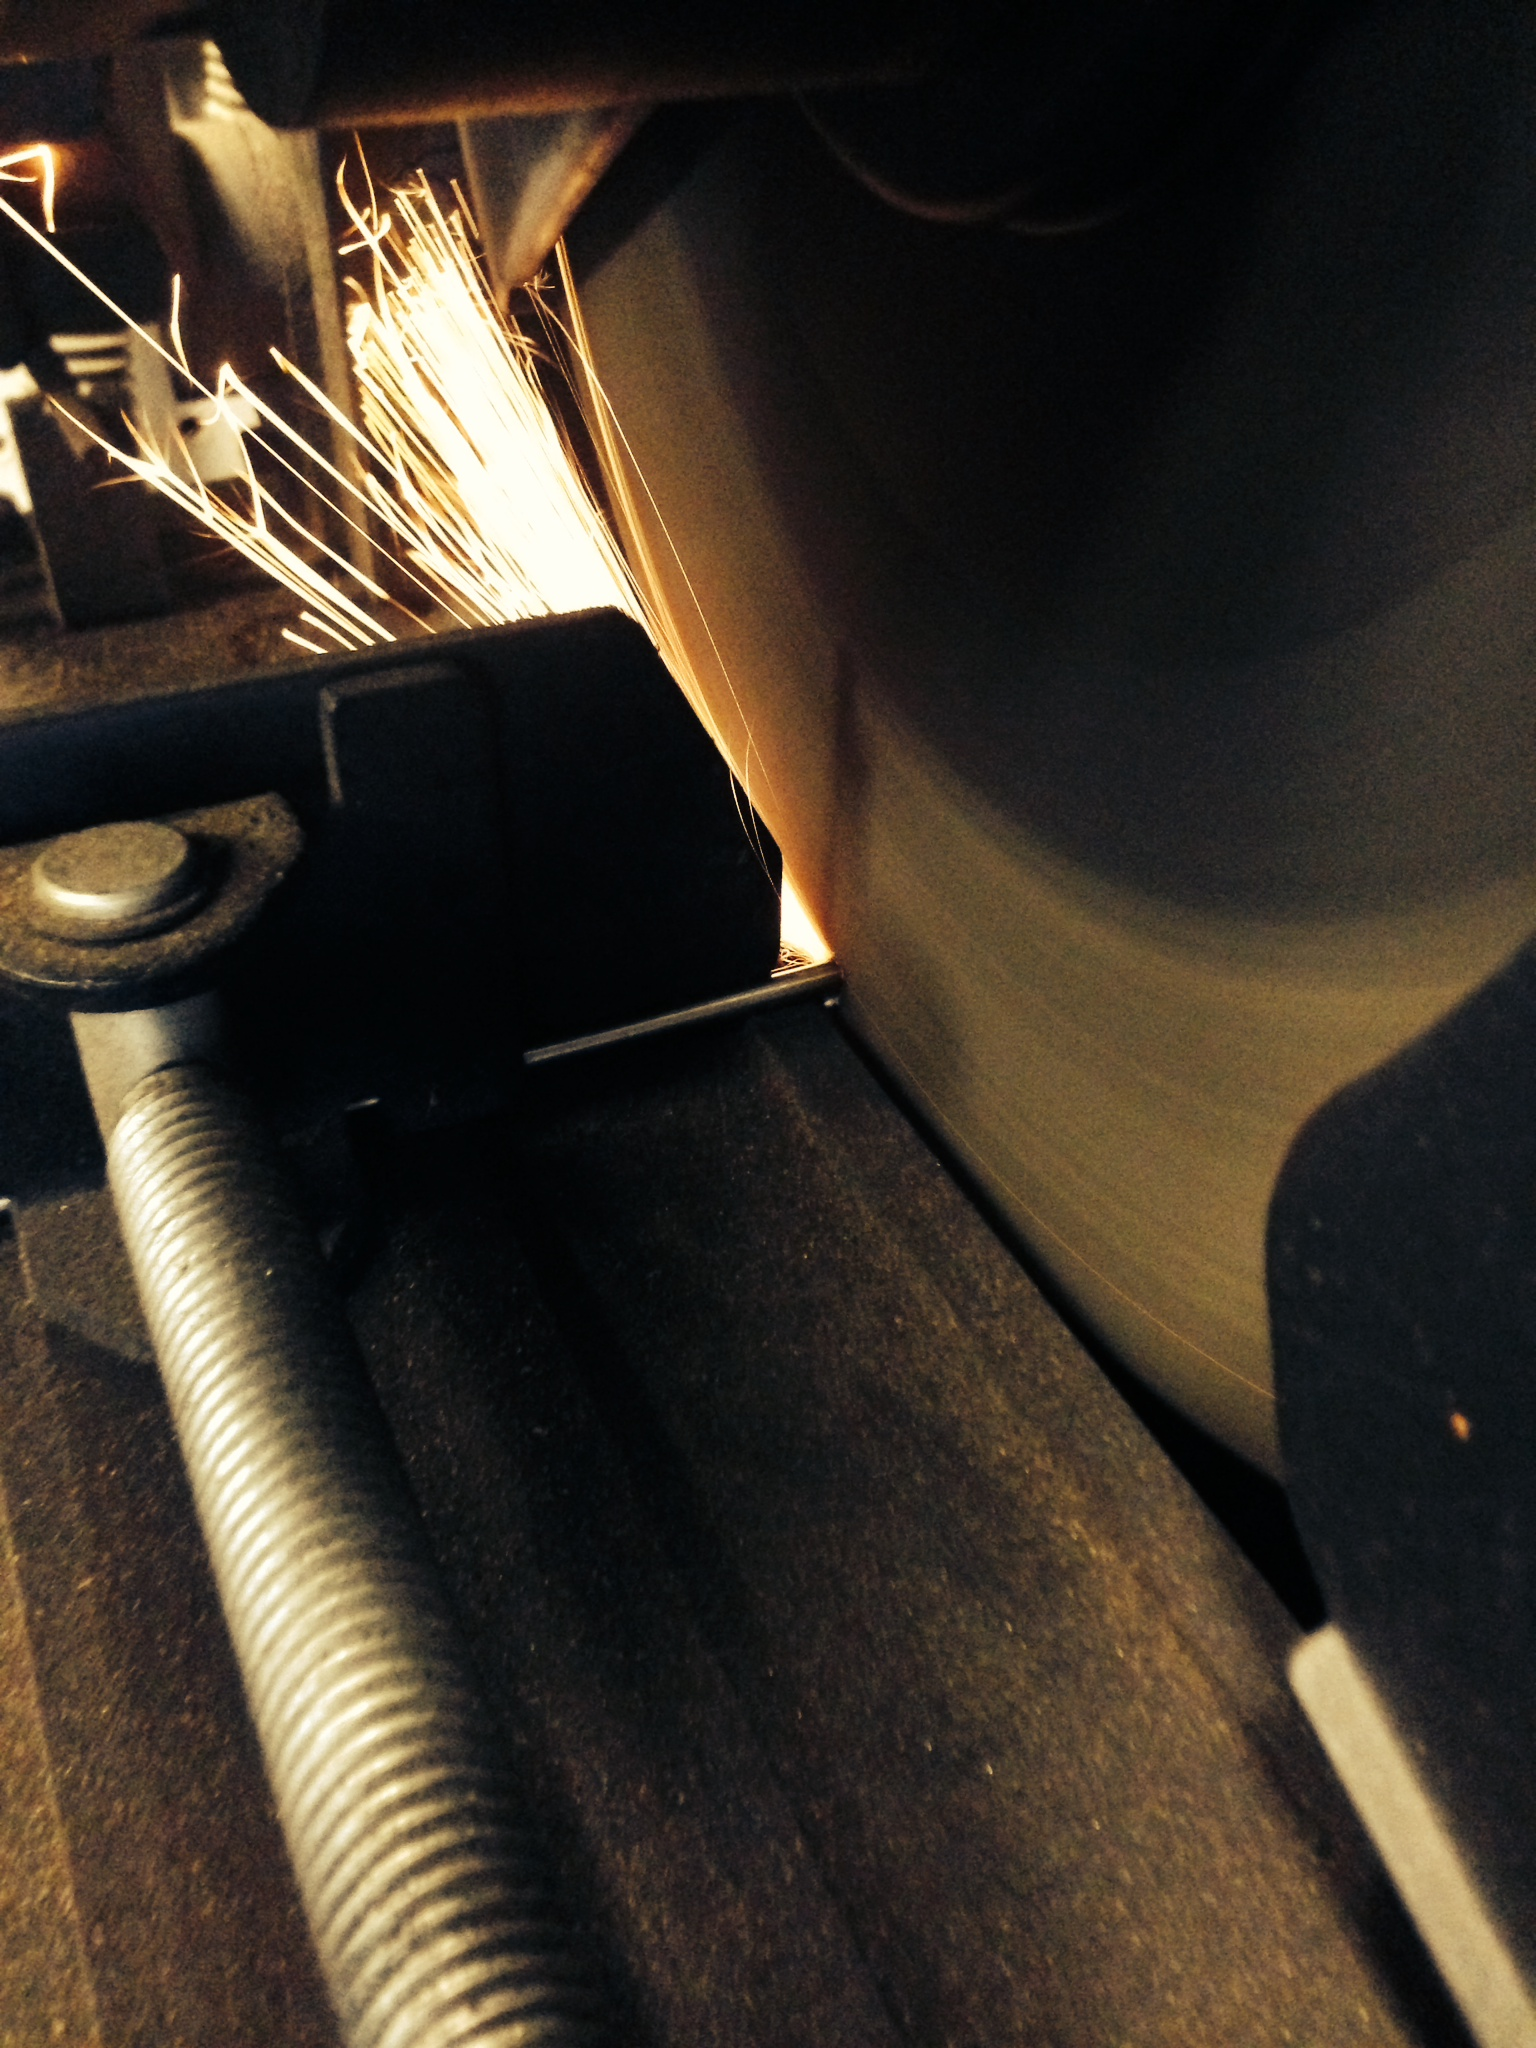 standard spoon prototype cutting sparks